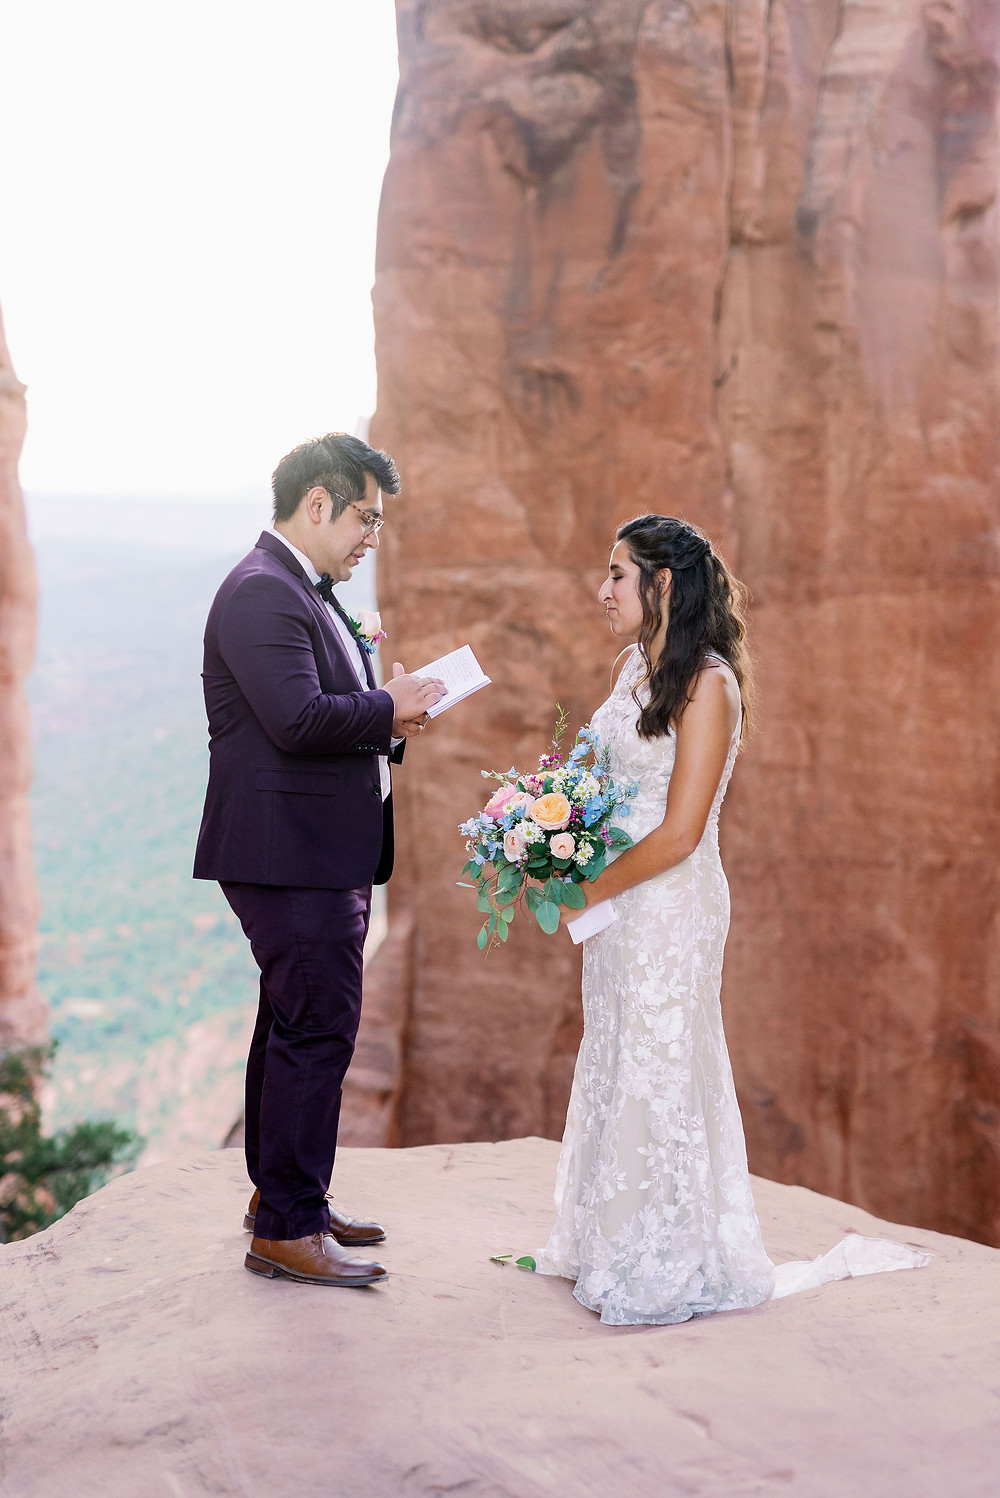 Sedona elopement ceremony on cathedral rock at sunrise